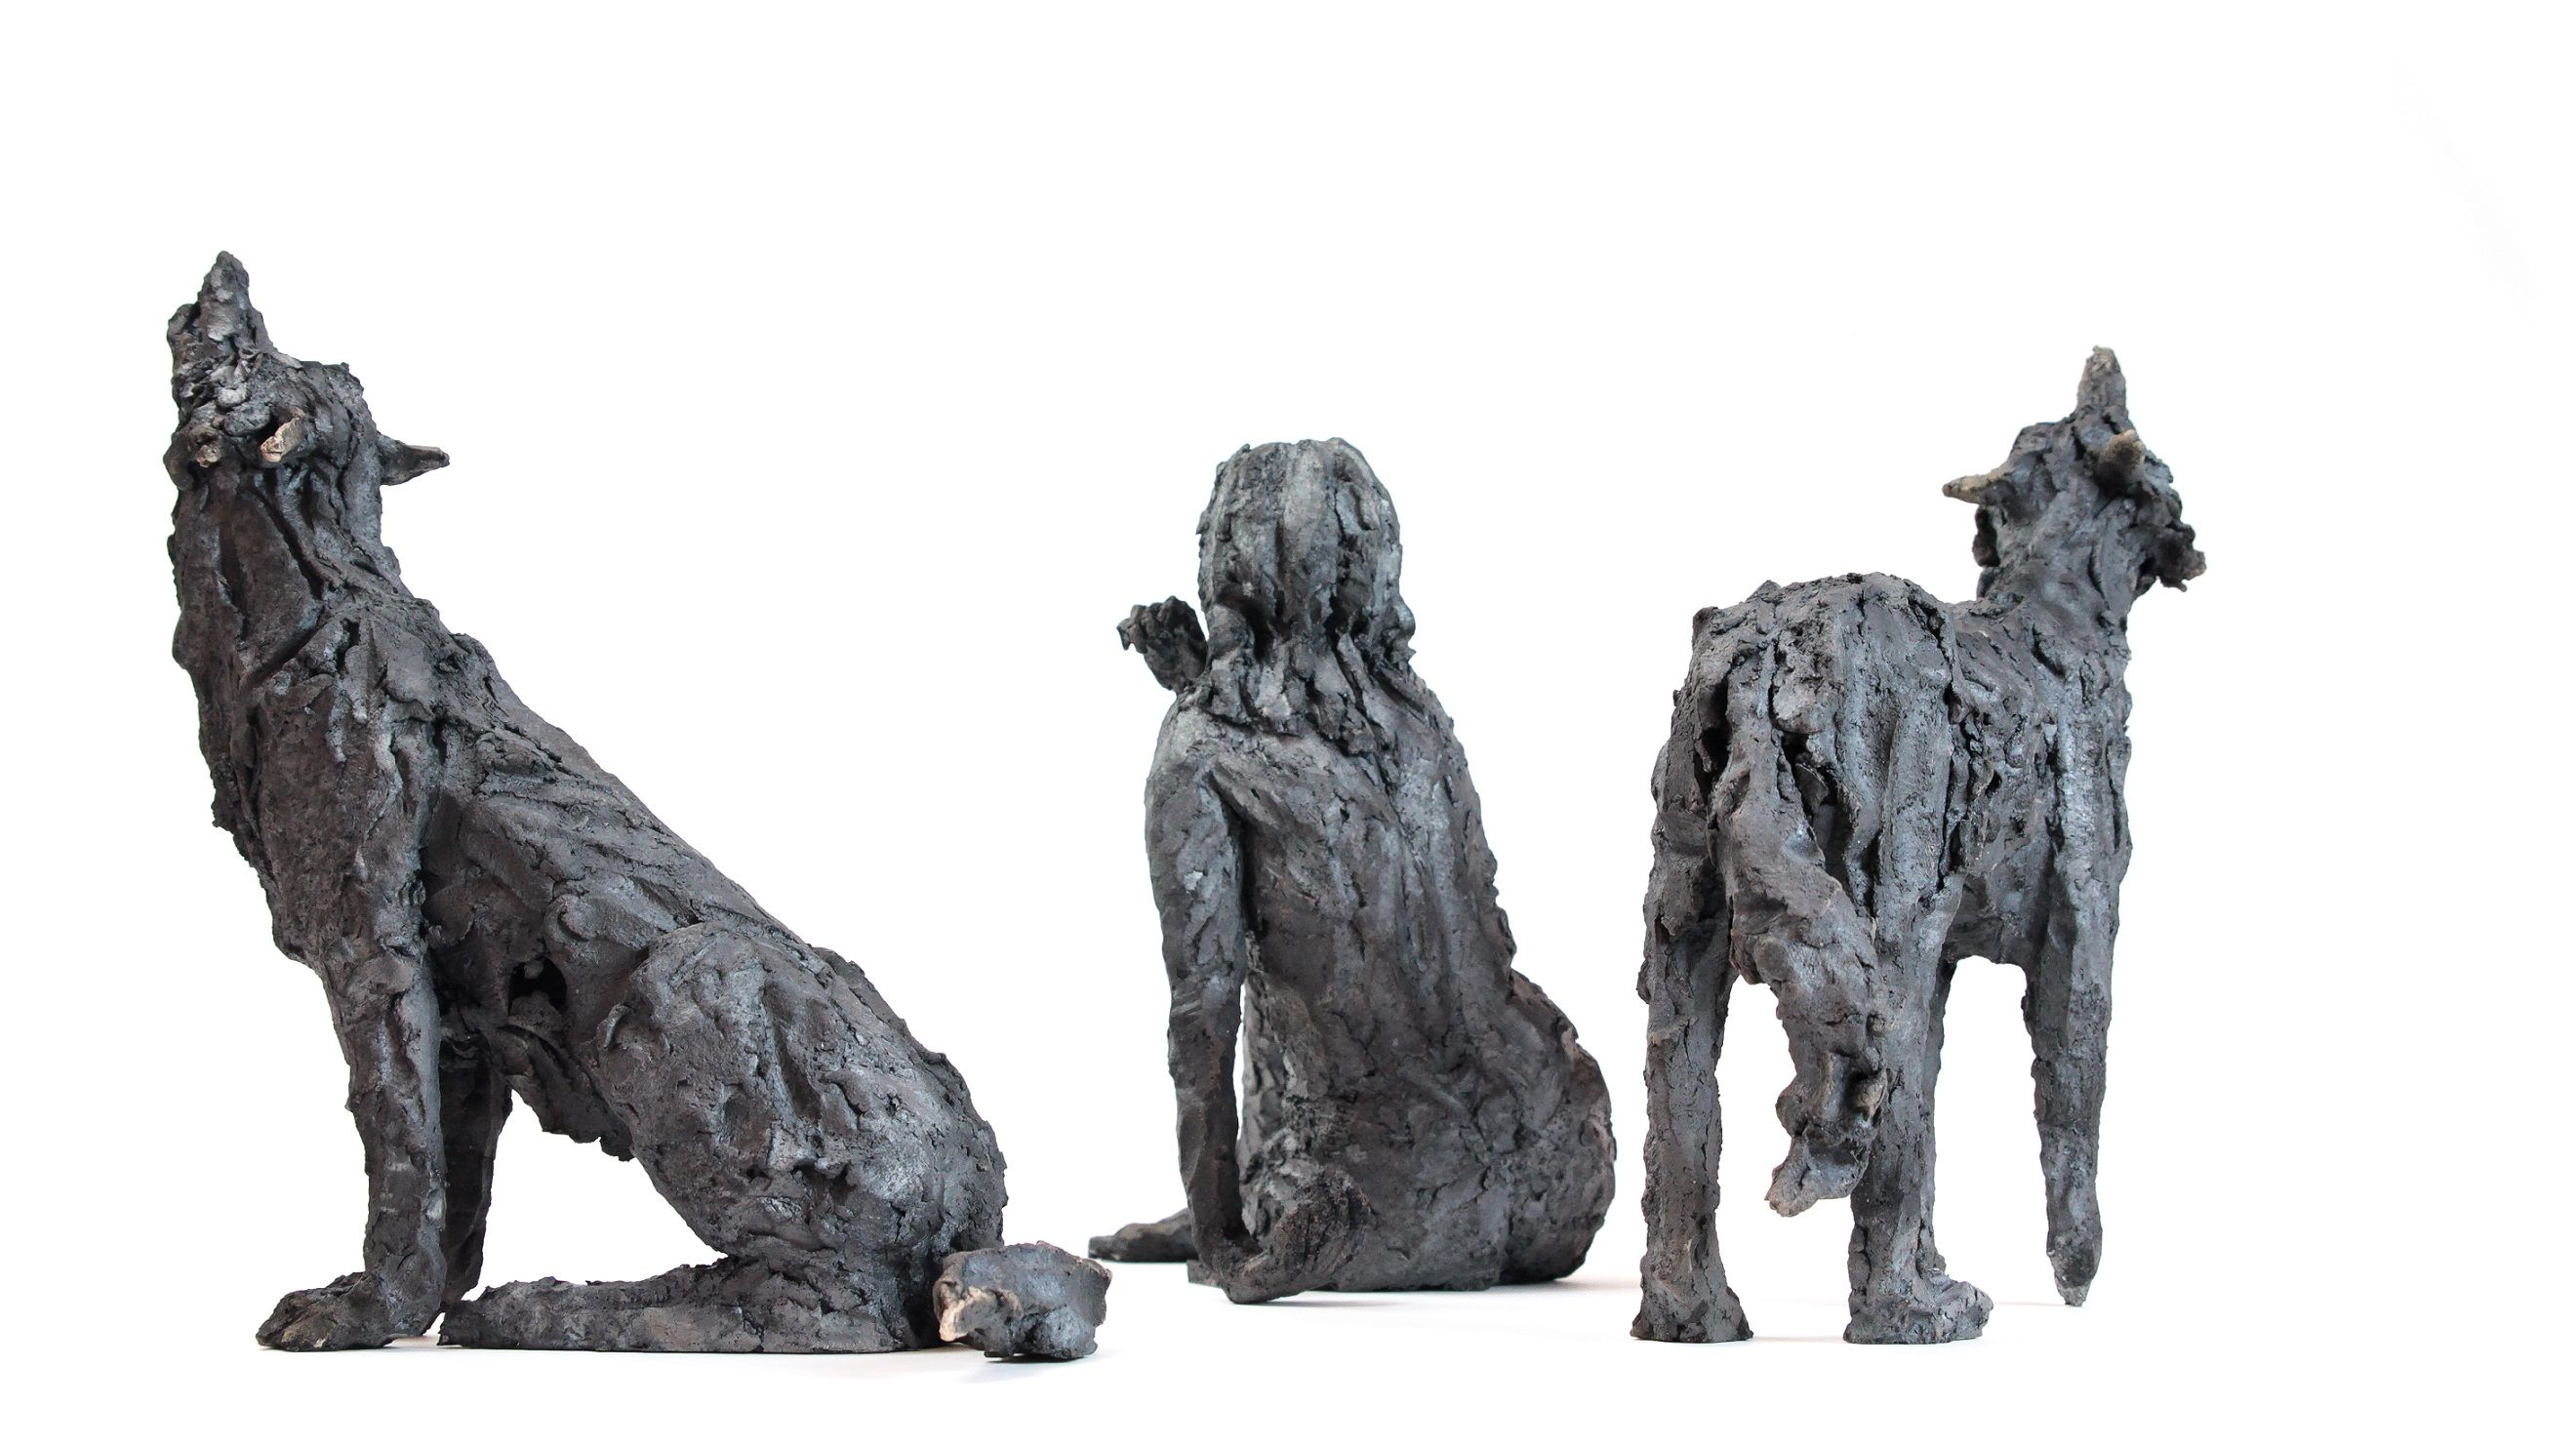 Wolf Pack - Cécile Raynal - Sculpture - detail 2